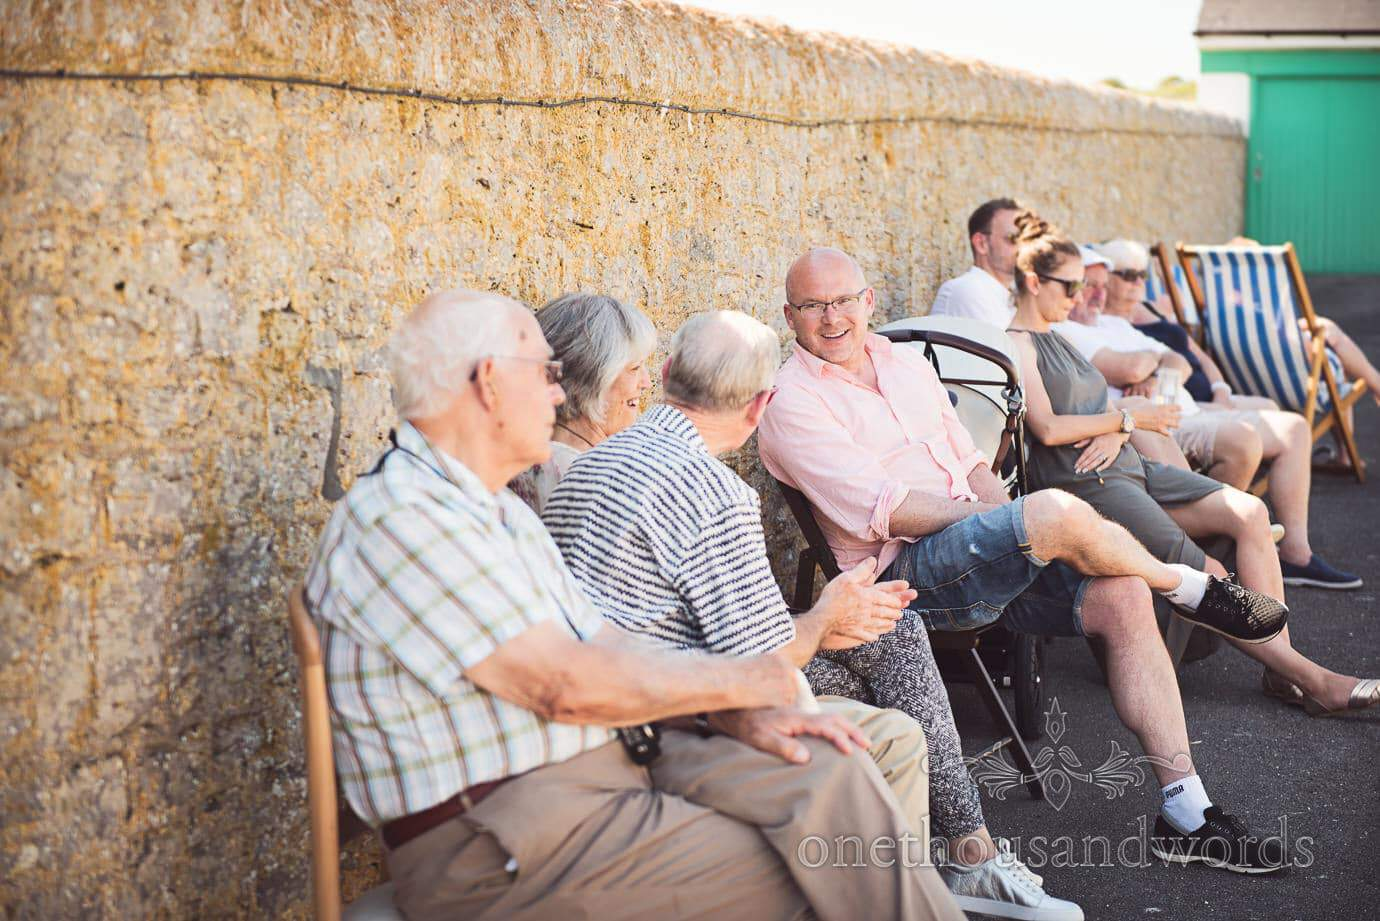 Wedding guests in deckchairs shelter in shade of a wall at Durlston Lighthouse wedding photographs